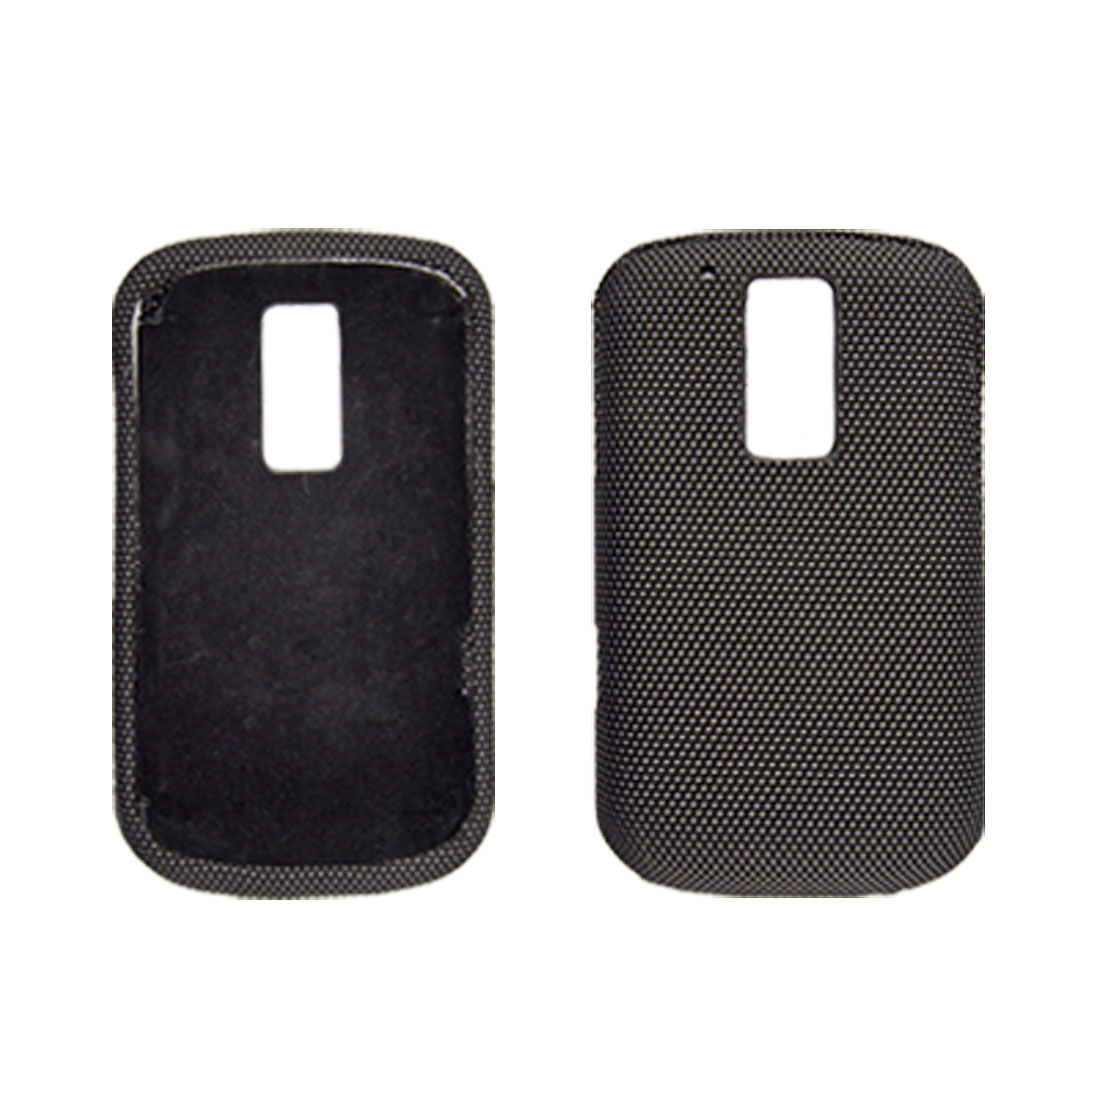 Nylon Covered Plastic Cover Protector for Blackberry Bold 9000